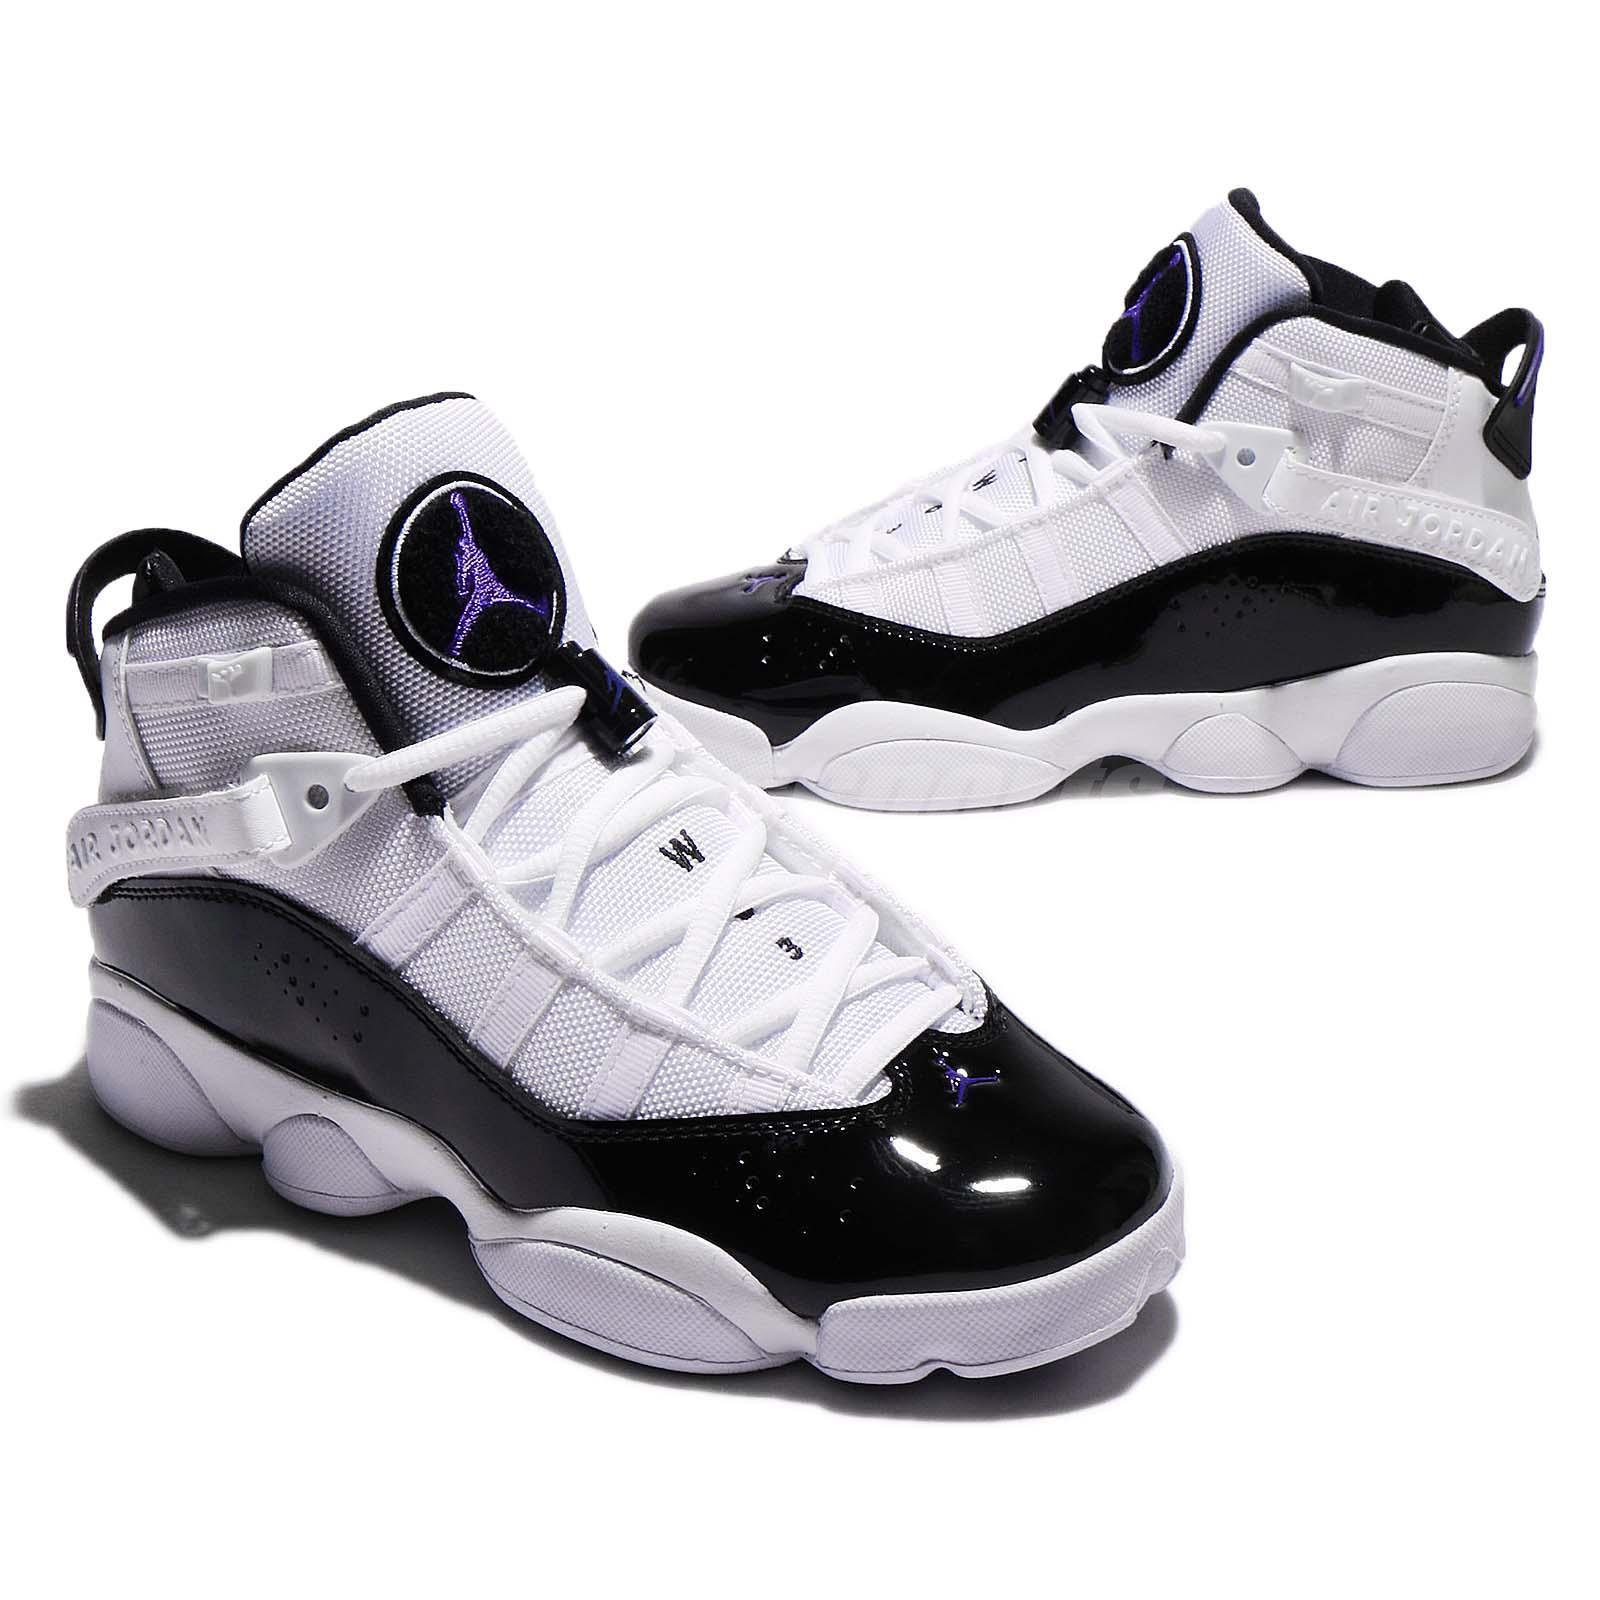 Only the Jordan 6 Rings in the 'Concord' colorway is available in men's  sizes at this time, but we'll be sure to update you once we see them  available ...